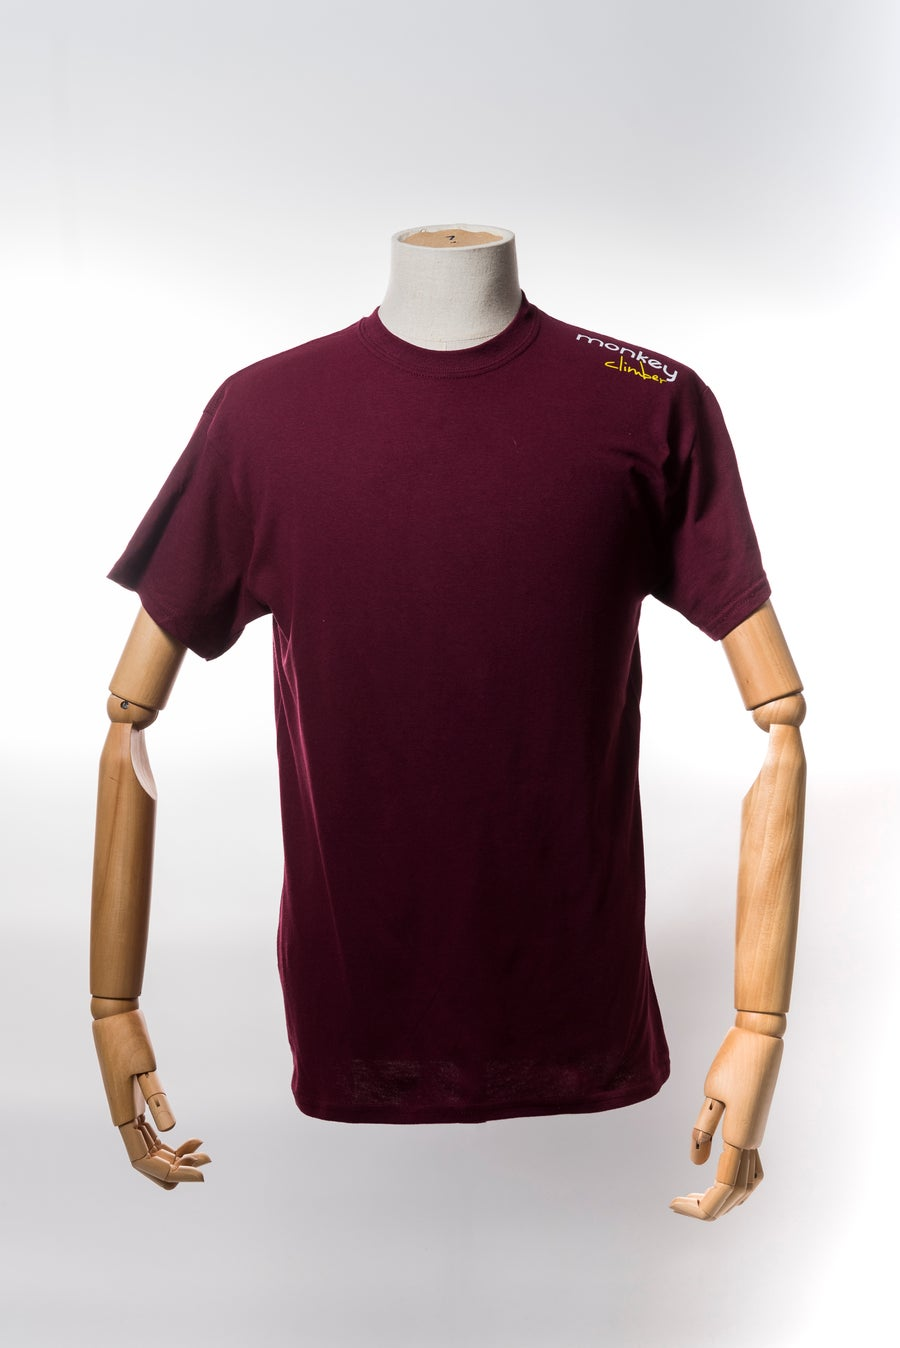 Image of Monkey Climber Streetwise shirt I Burgundy